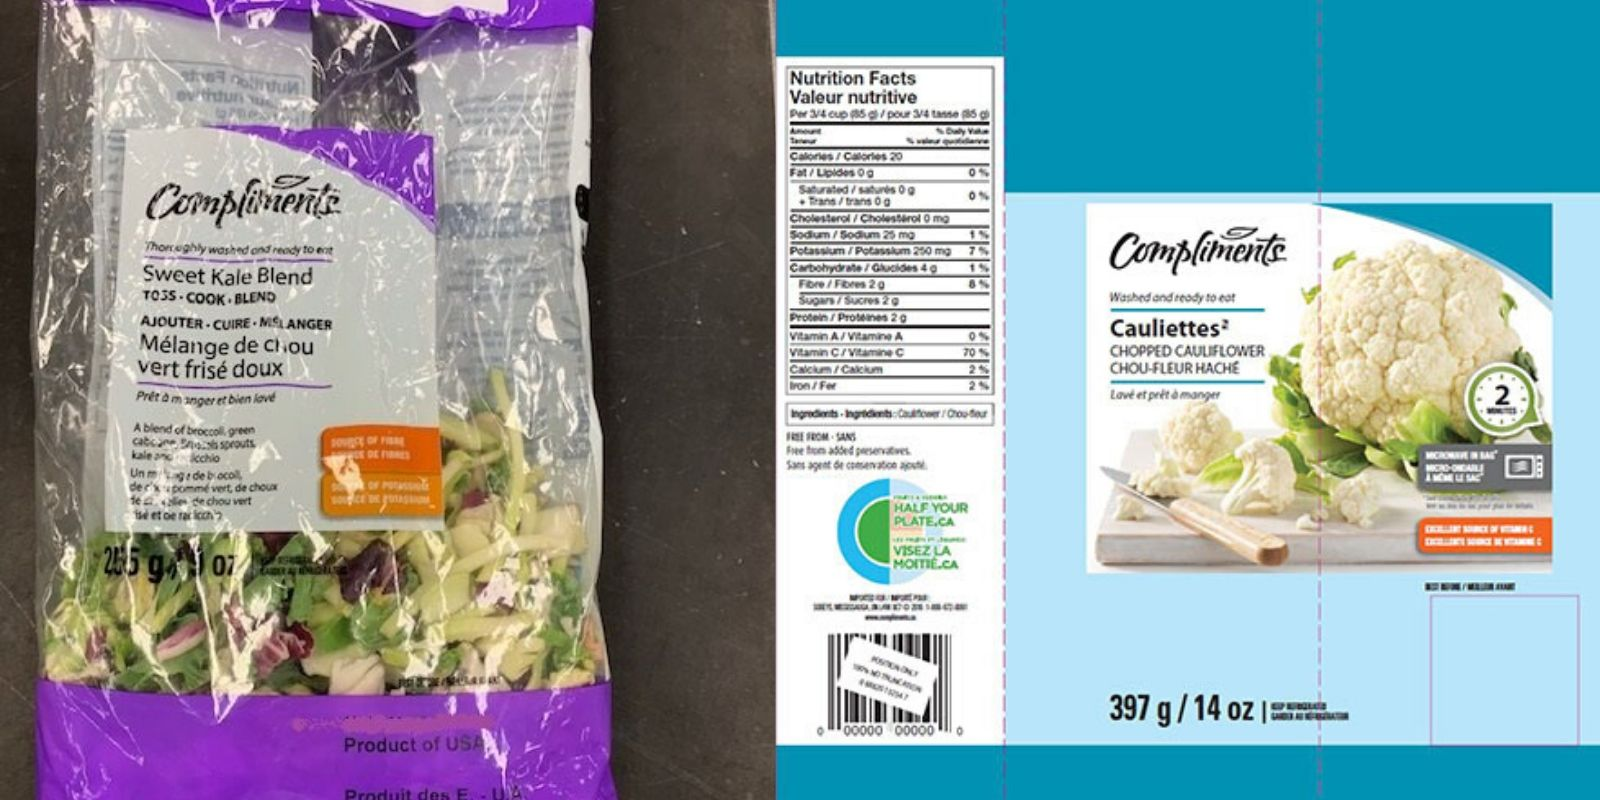 Compliments brand fresh-cut vegetables recalled Canada-wide due to Listeria contamination